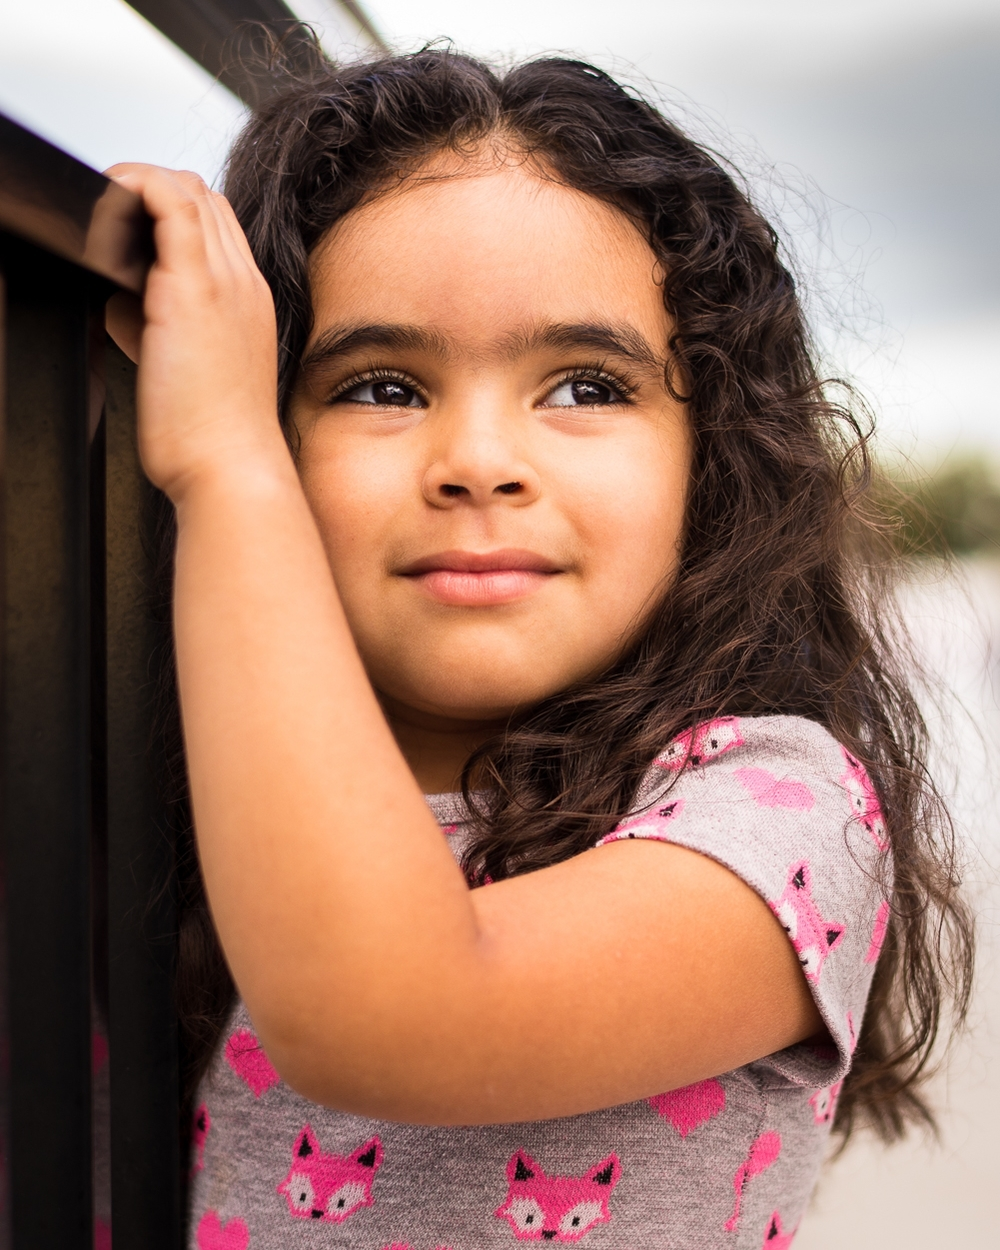 Jacksonville Child Portrait.jpg